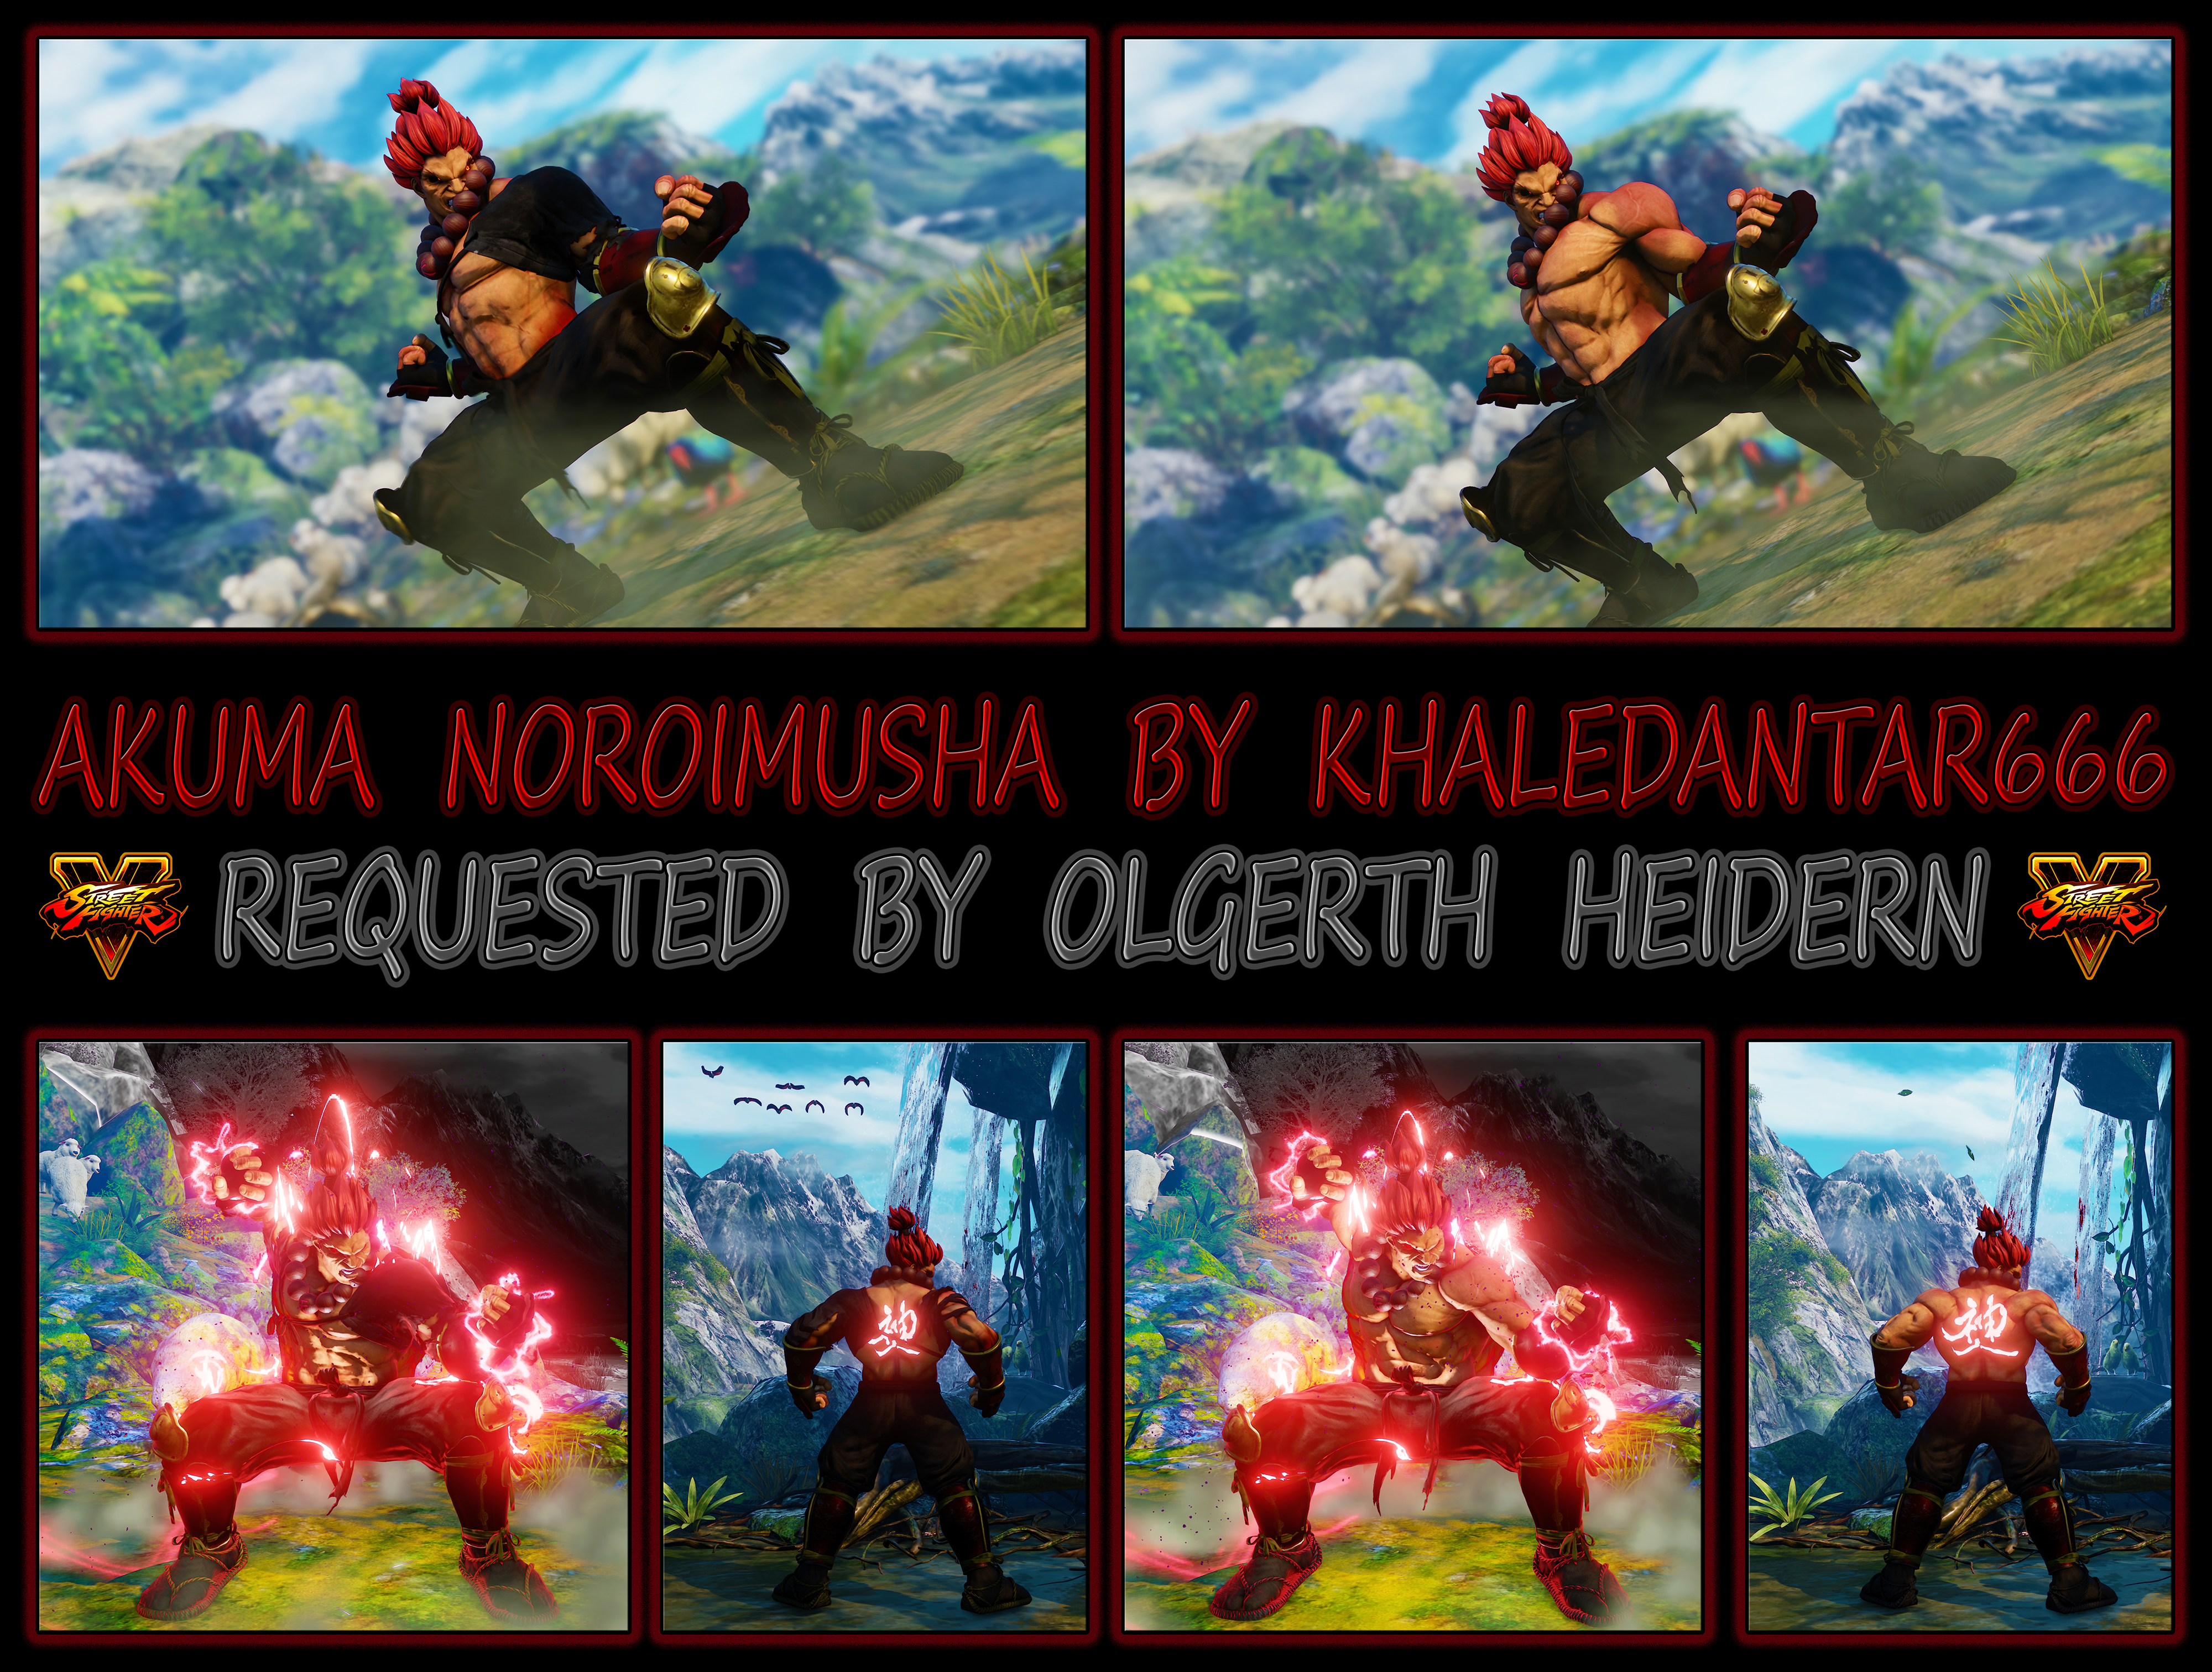 akuma_noroimusha_by_khaledantar666_requested_by_ol_by_khaledantar666-day6cte.jpg